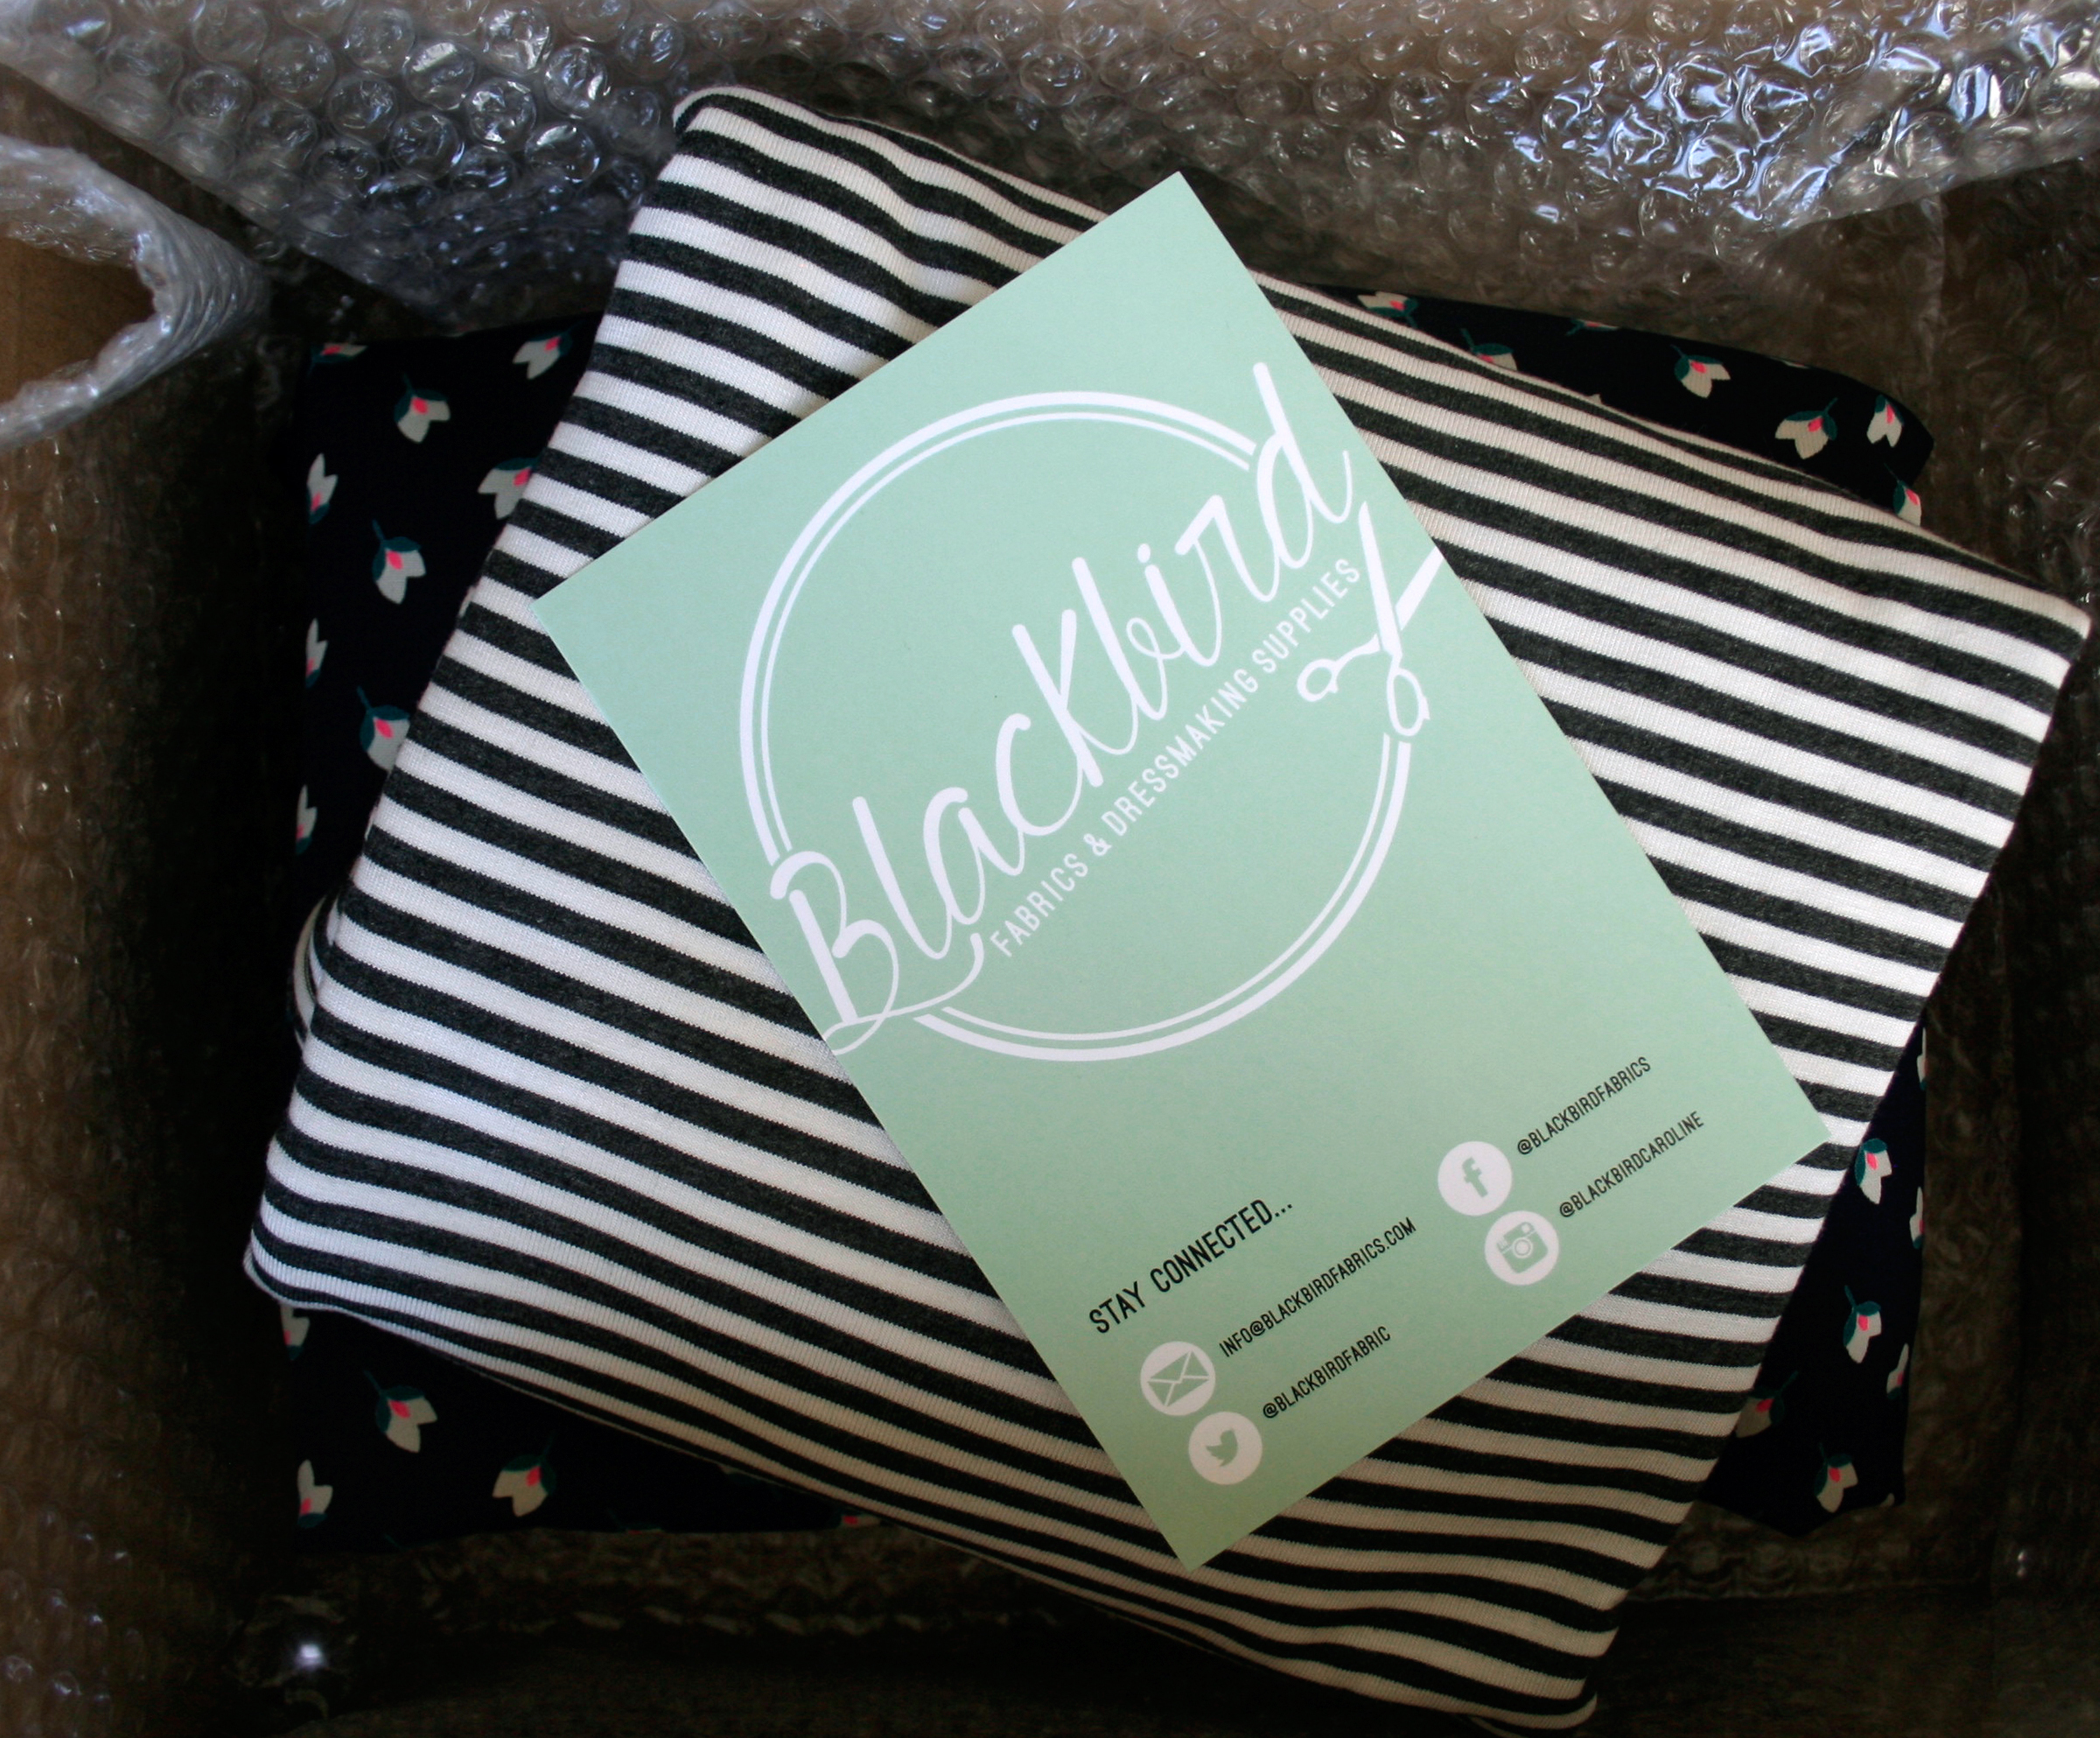 katelynbishop_design_blackbird_package